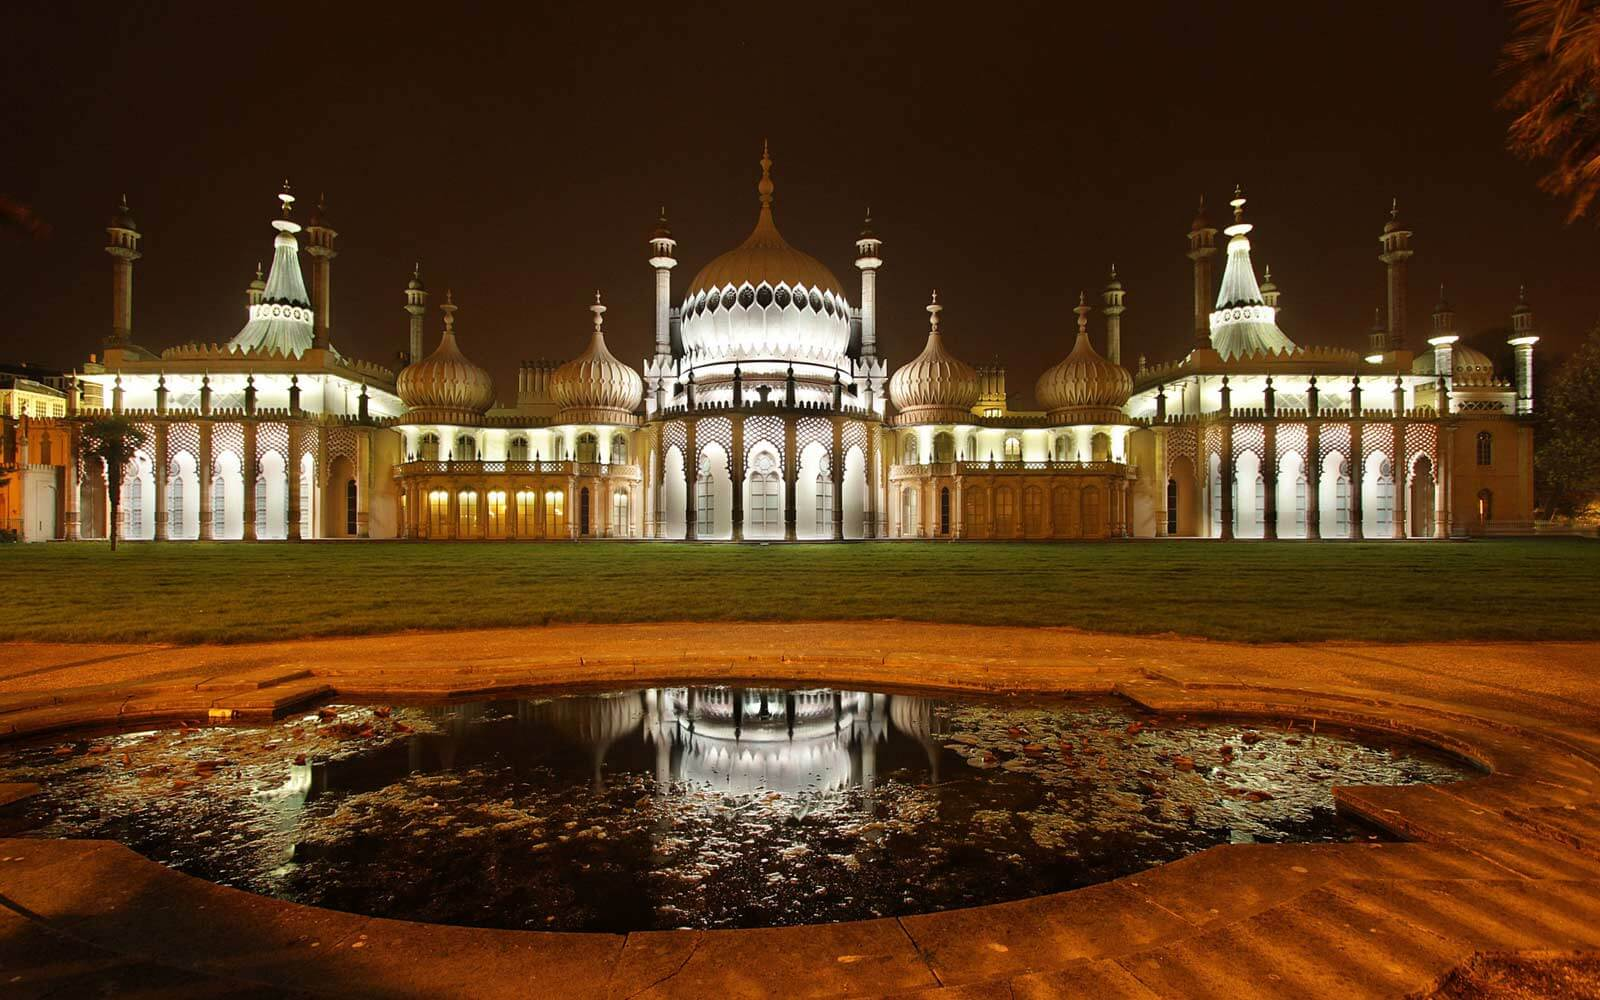 Royal Pavilion in Brighton bei Nacht